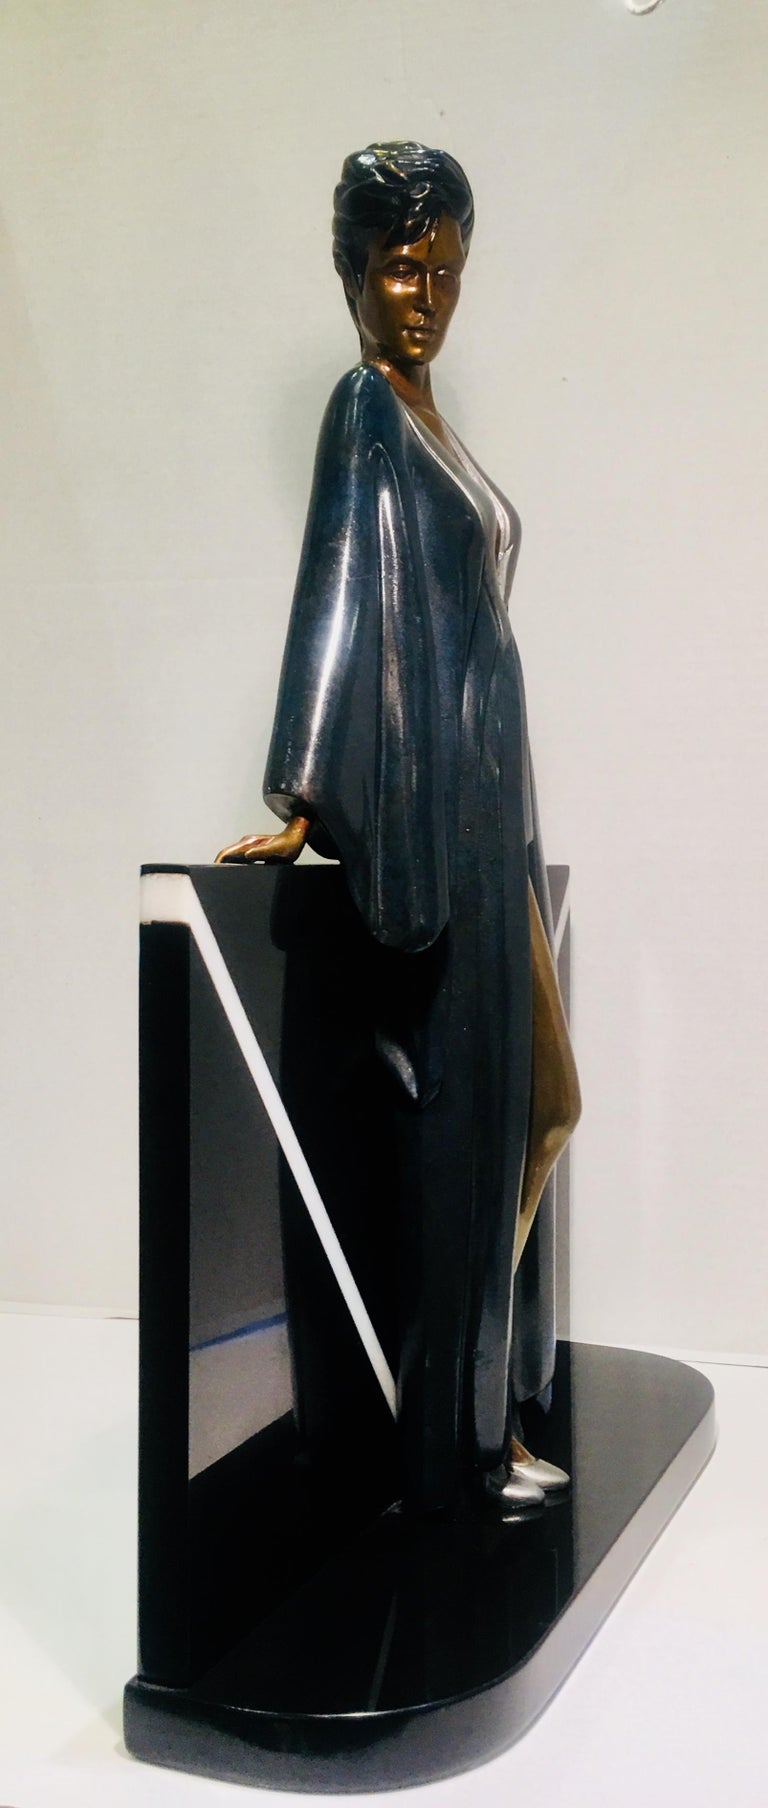 One of only two Patrick Nagel bronze sculptures to make it out of the foundry and limited to 180 pieces in the world,